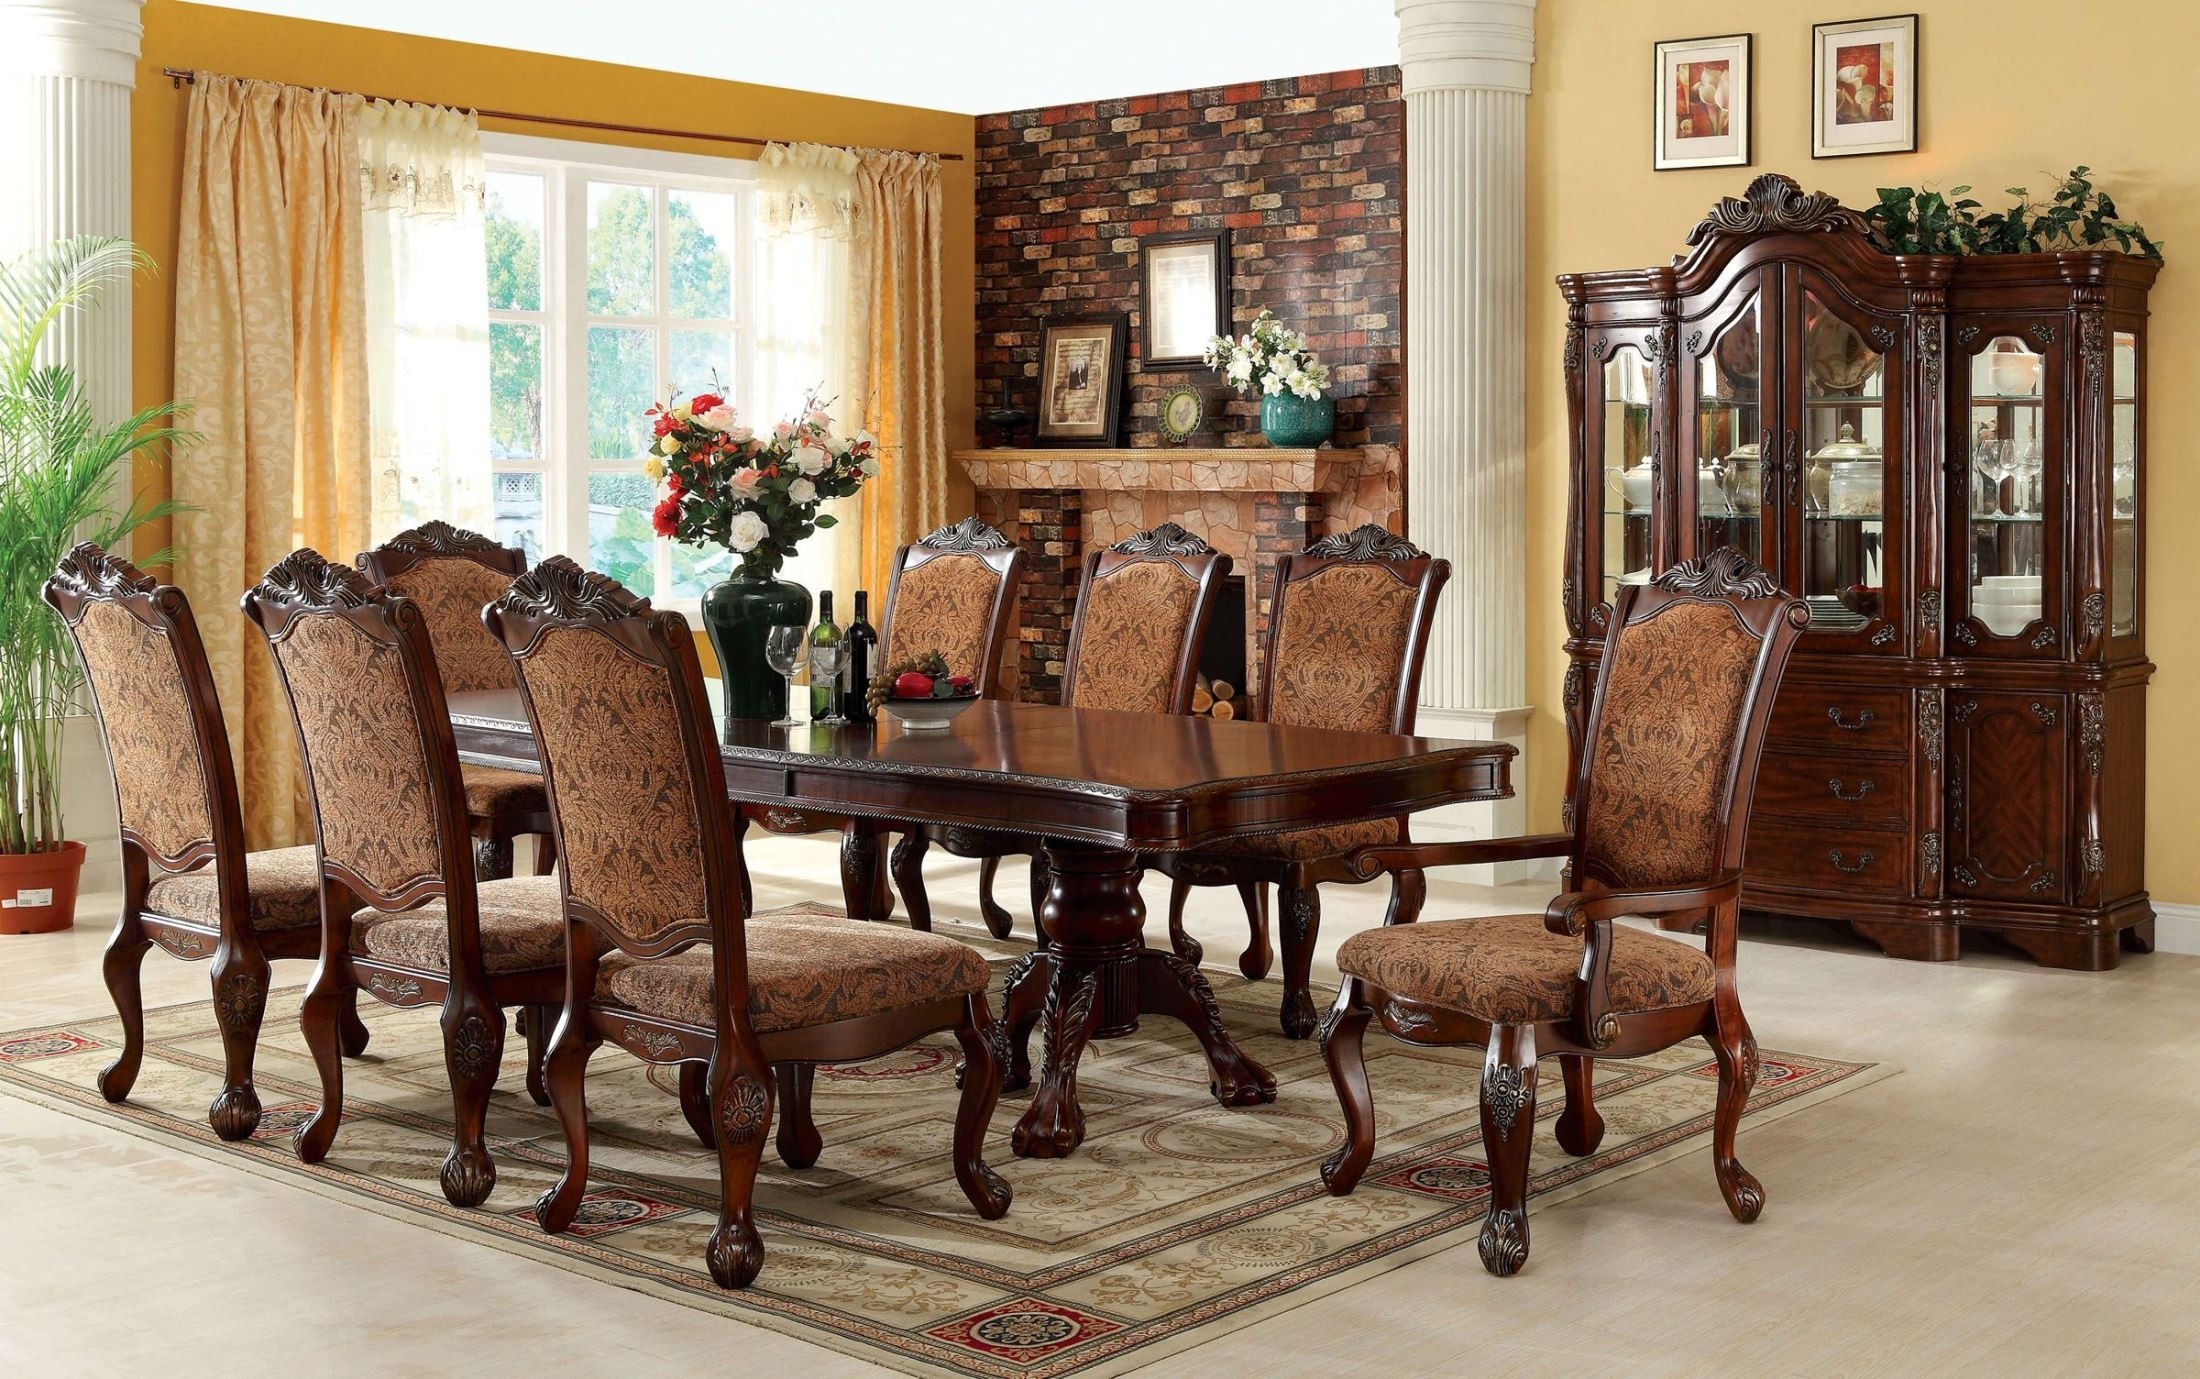 Cromwell antique cherry formal dining room set cm3103t for Dining room chair set